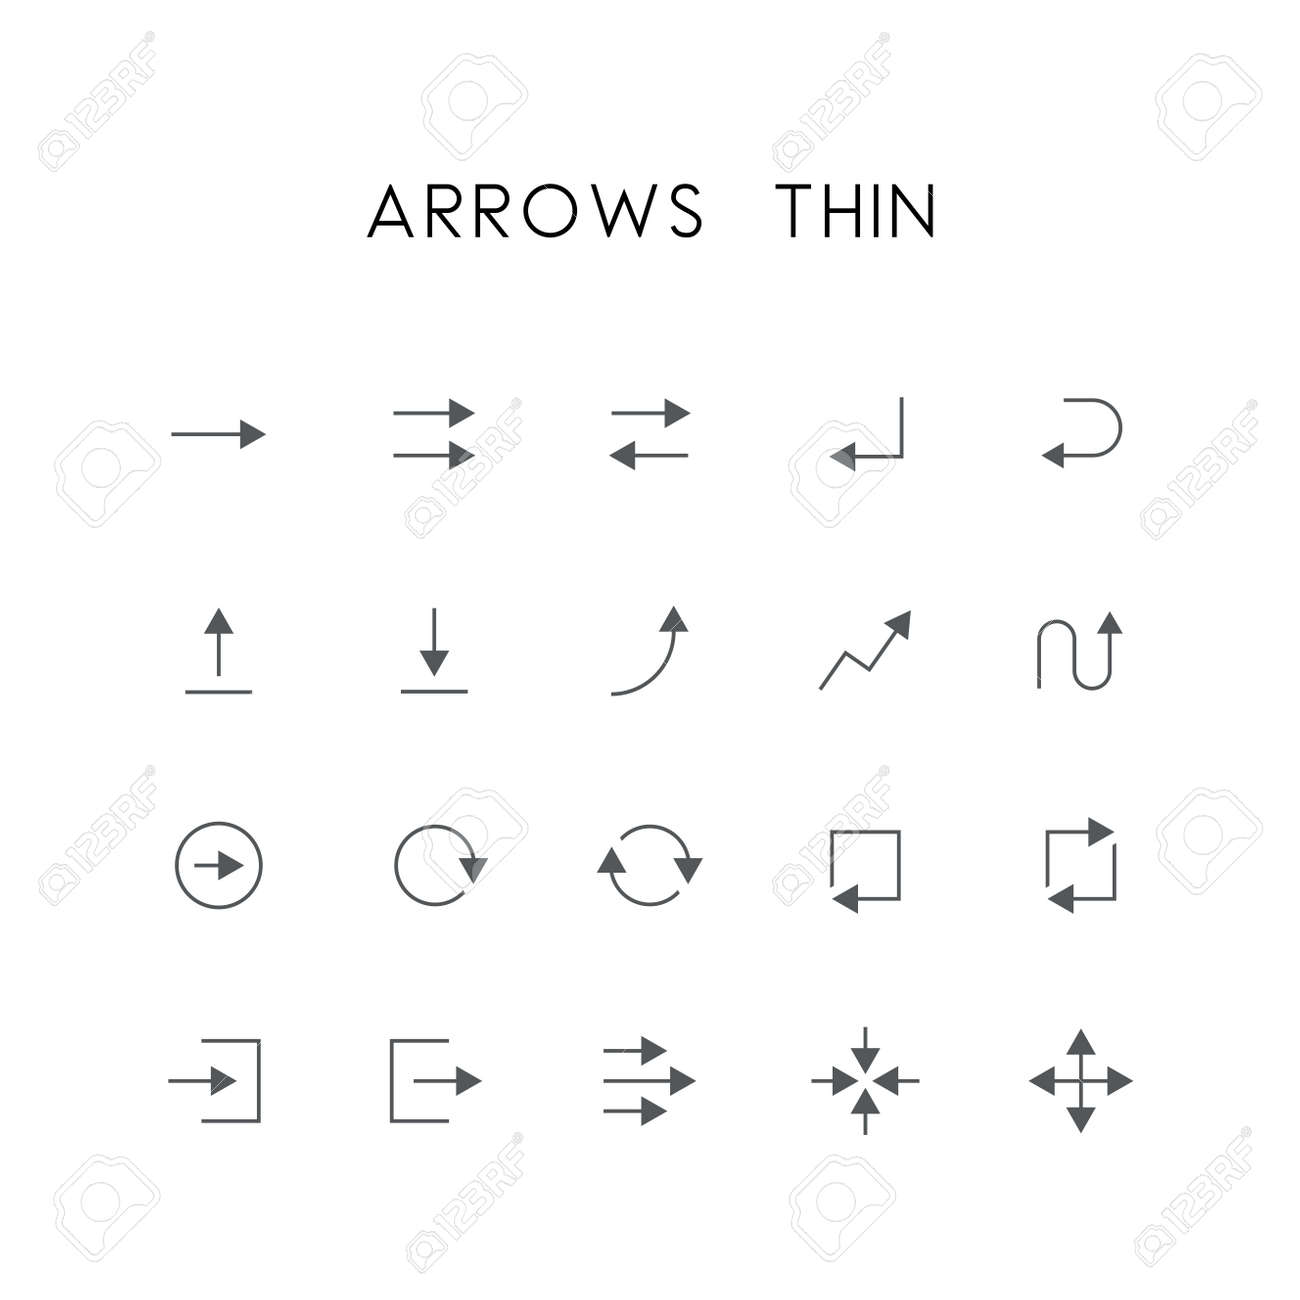 Arrows thin icon set - different elements, enter, back, upload,